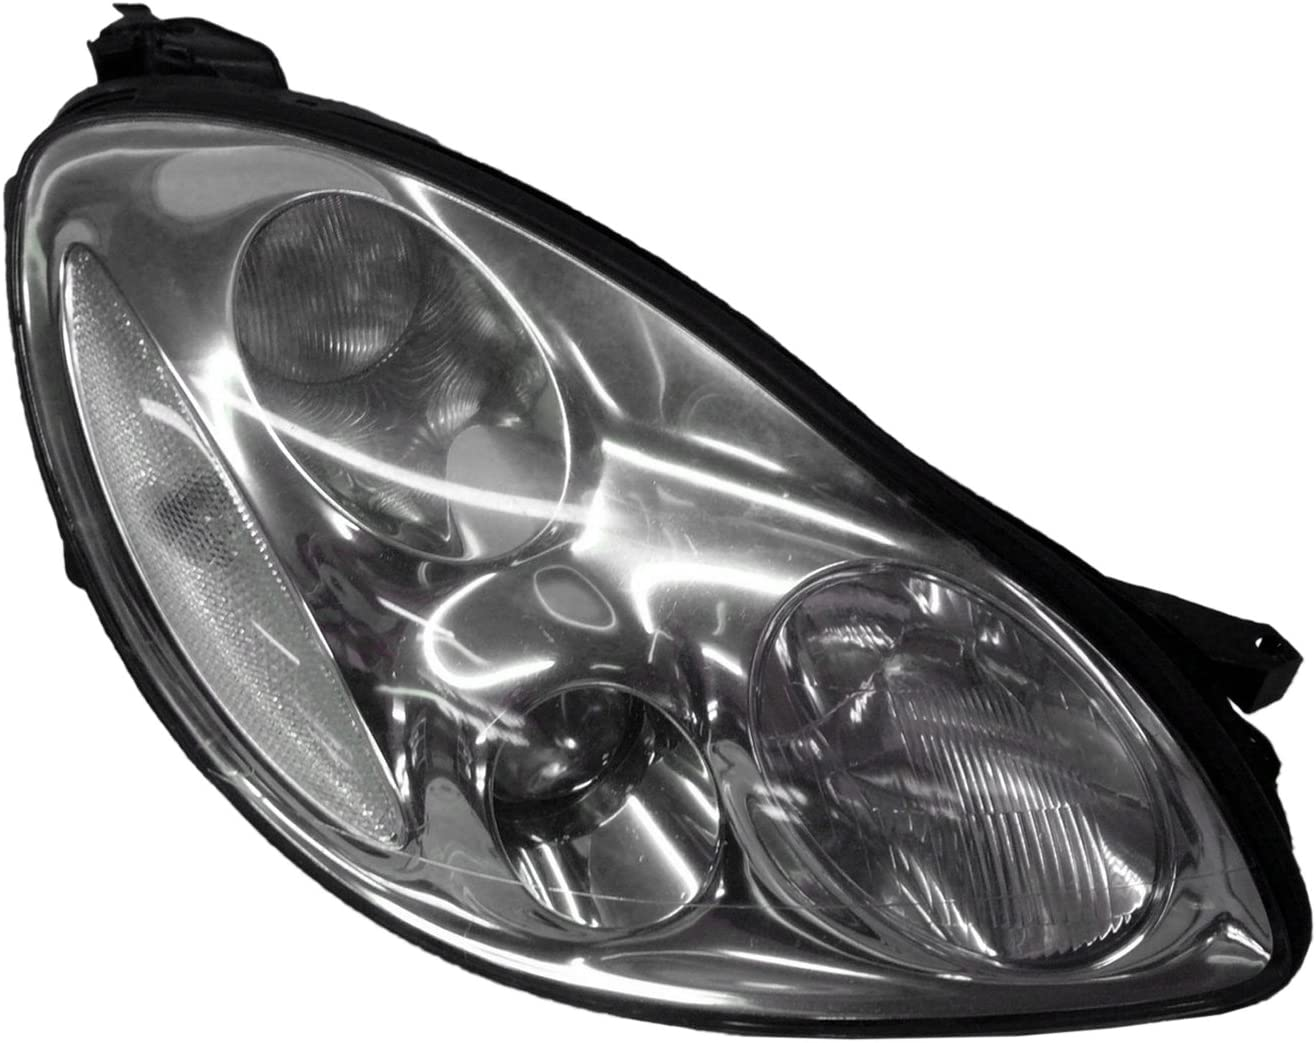 OE Replacement Headlight Assembly LEXUS SC430 New popularity San Francisco Mall